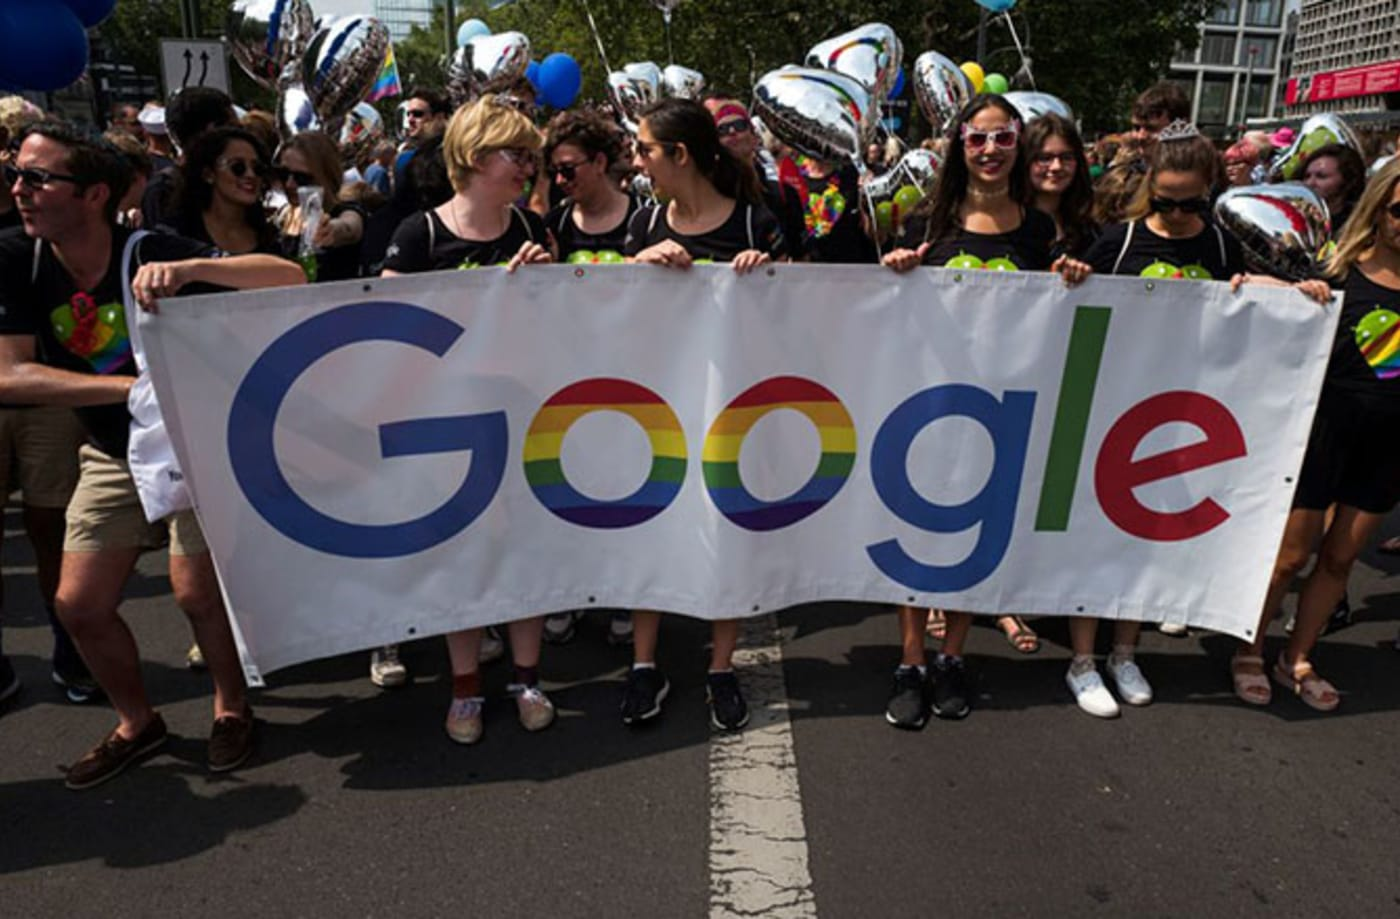 This is a photo of Google.